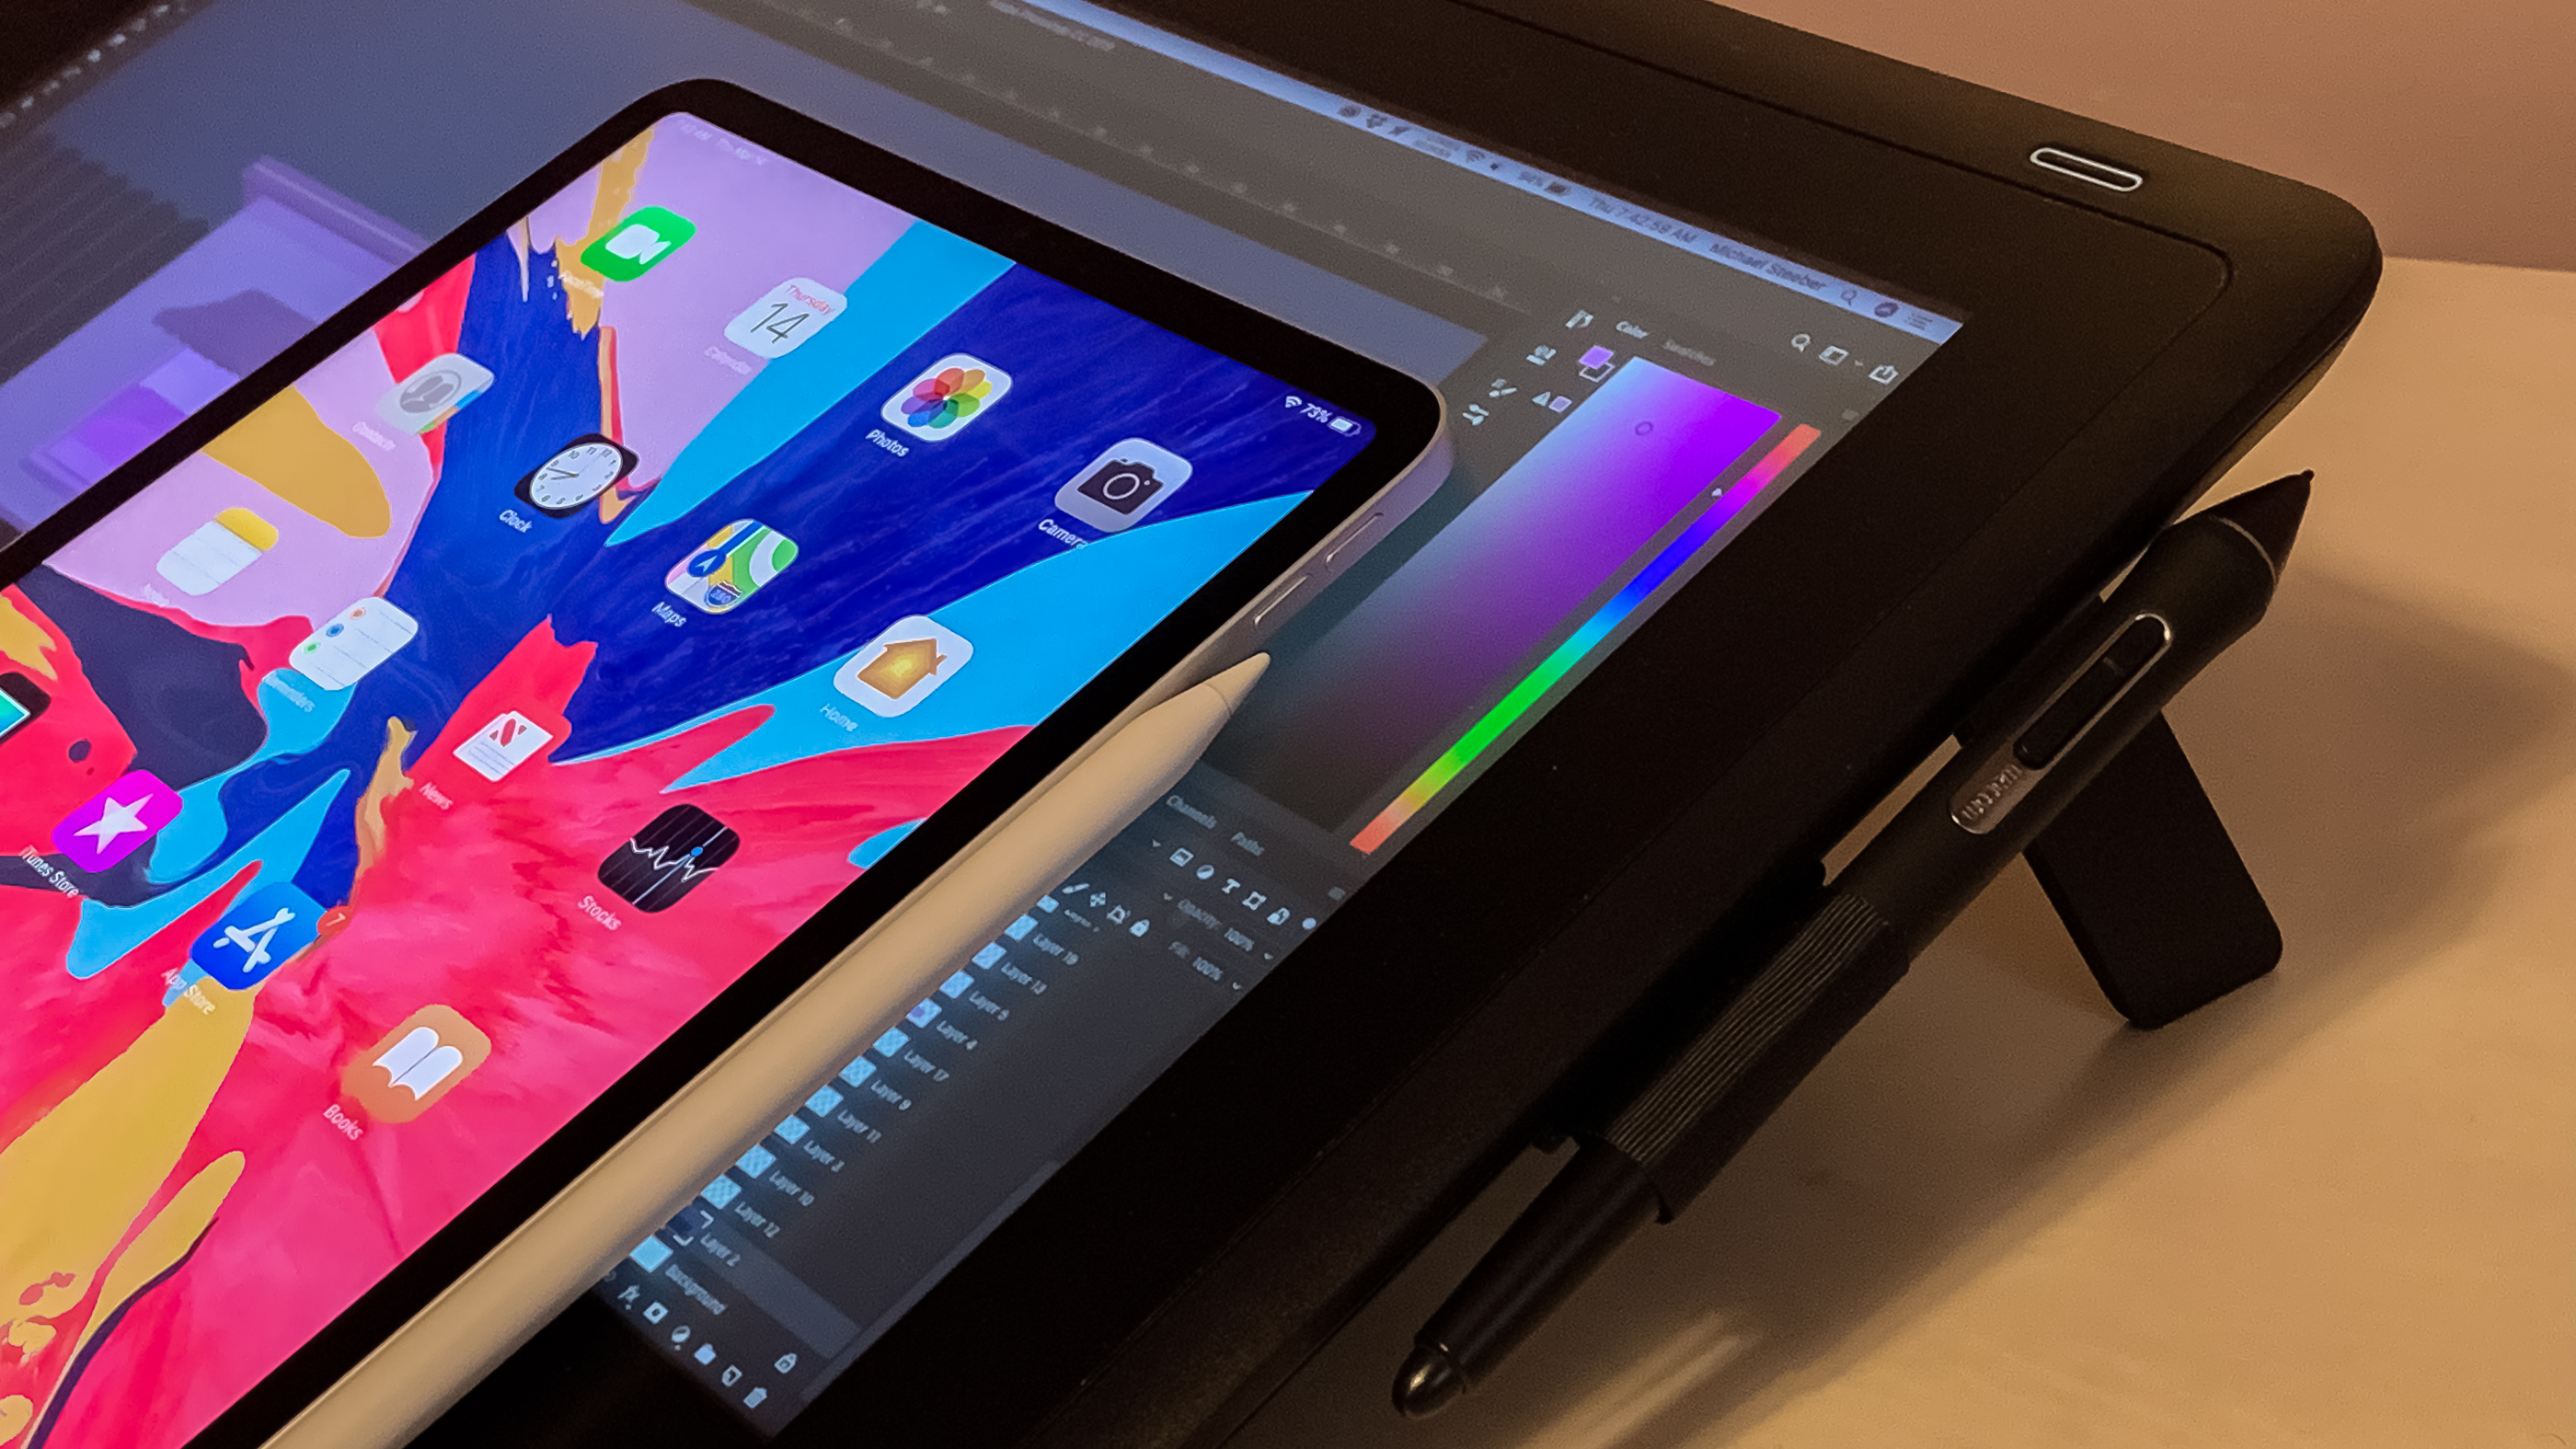 Pro User Hands On Wacom S Cintiq 16 Tablet From The Perspective Of An Ipad